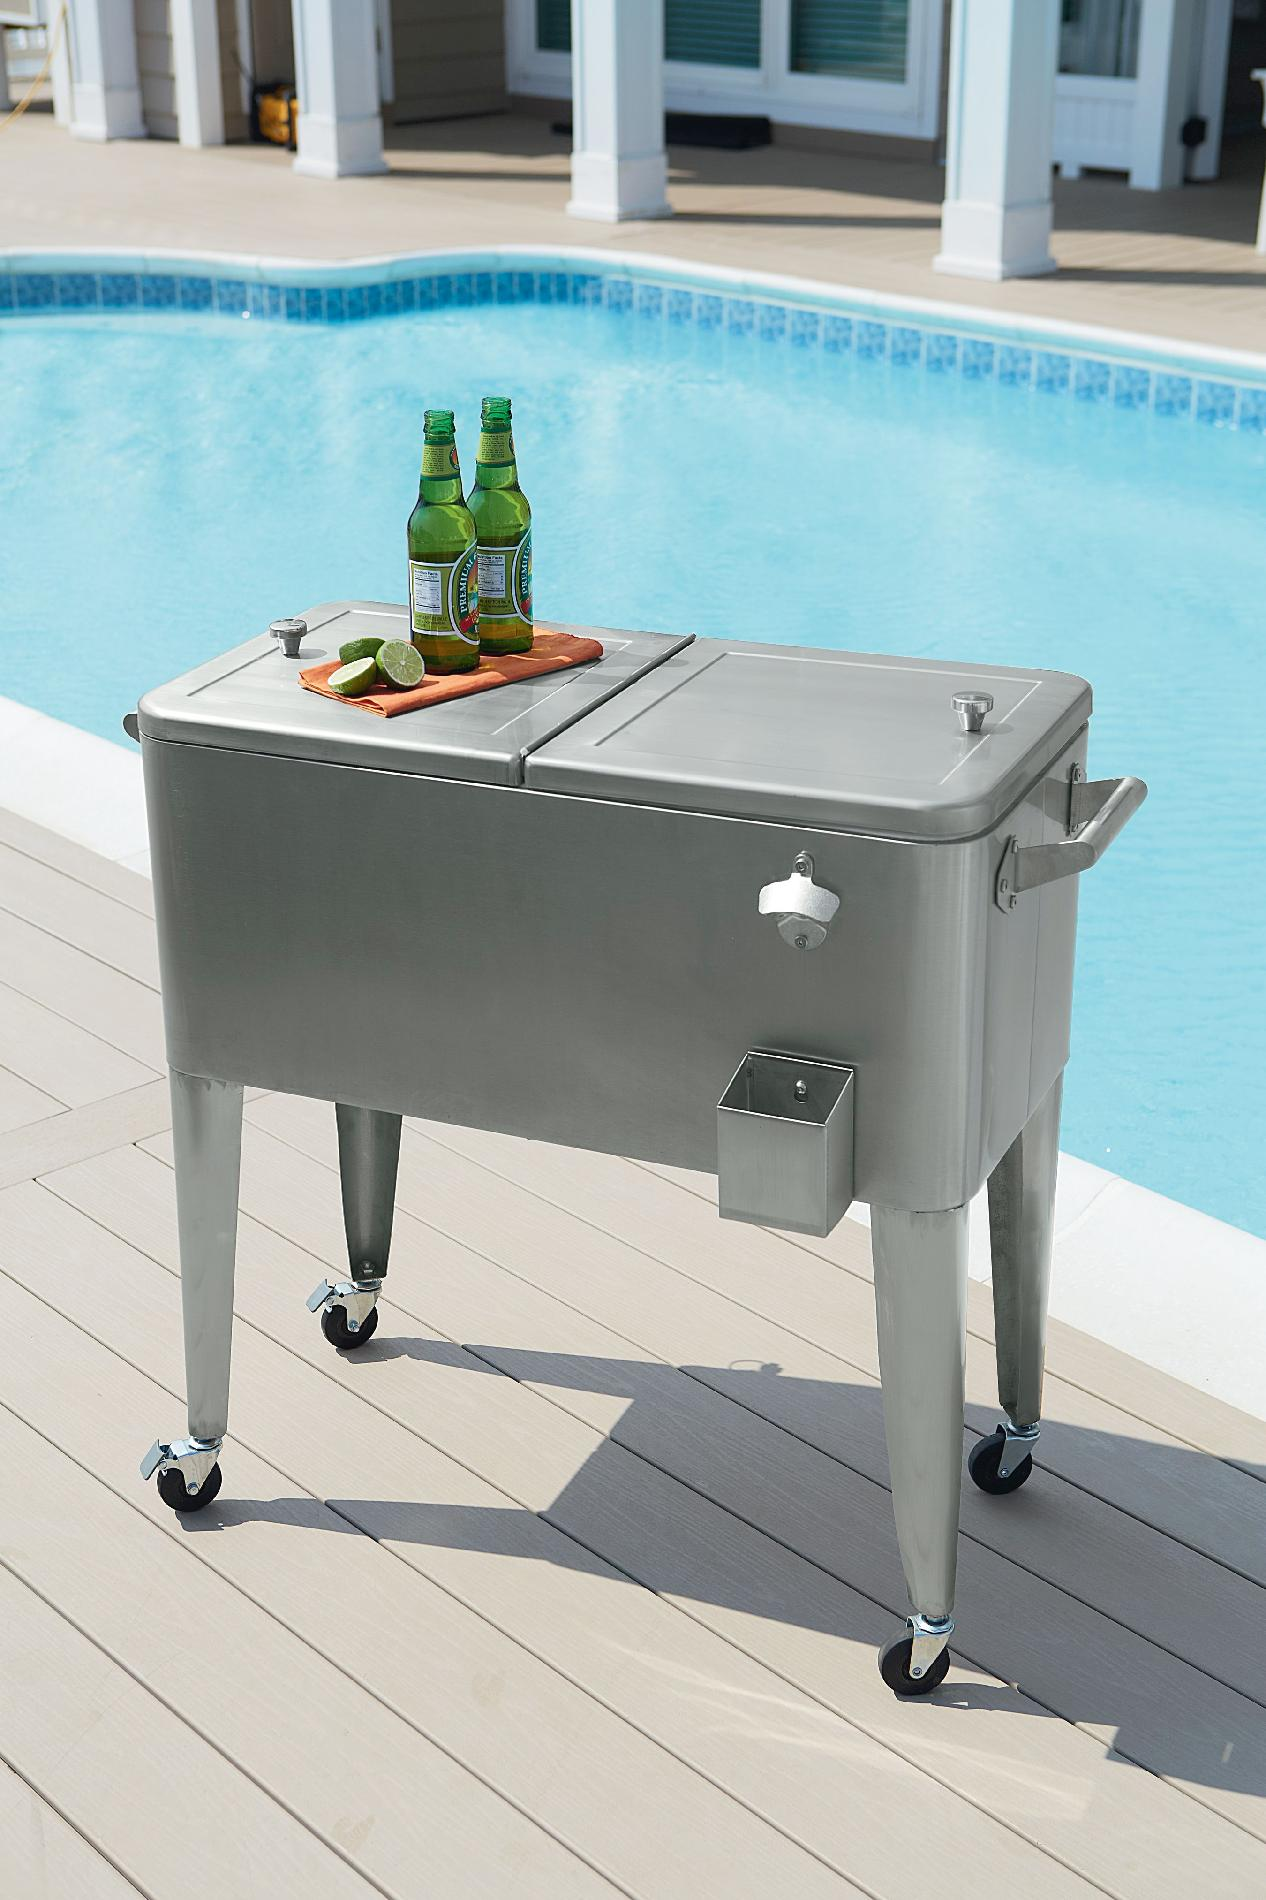 Garden Oasis 80qt Stainless Steel Patio Cooler - Outdoor Living - Patio  Furniture - Specialty Accessories - Garden Oasis 80qt Stainless Steel Patio Cooler - Outdoor Living